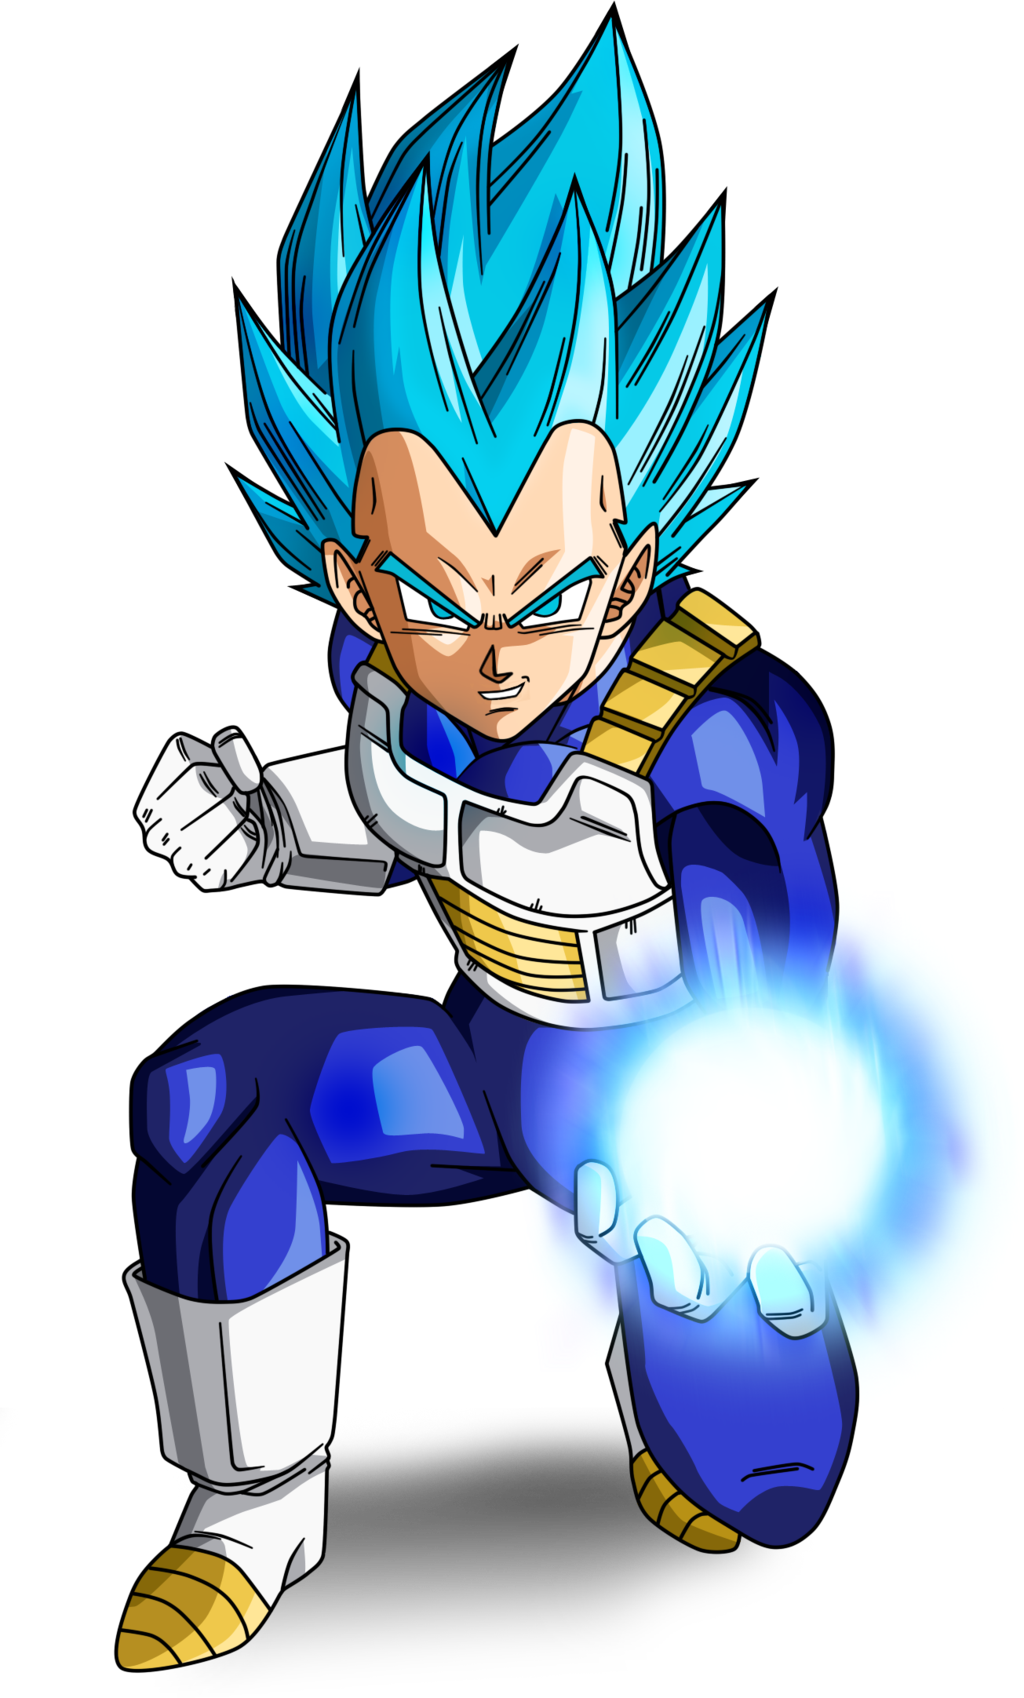 Image - Vegeta Ssj Blue Full power confirmed in episode ...